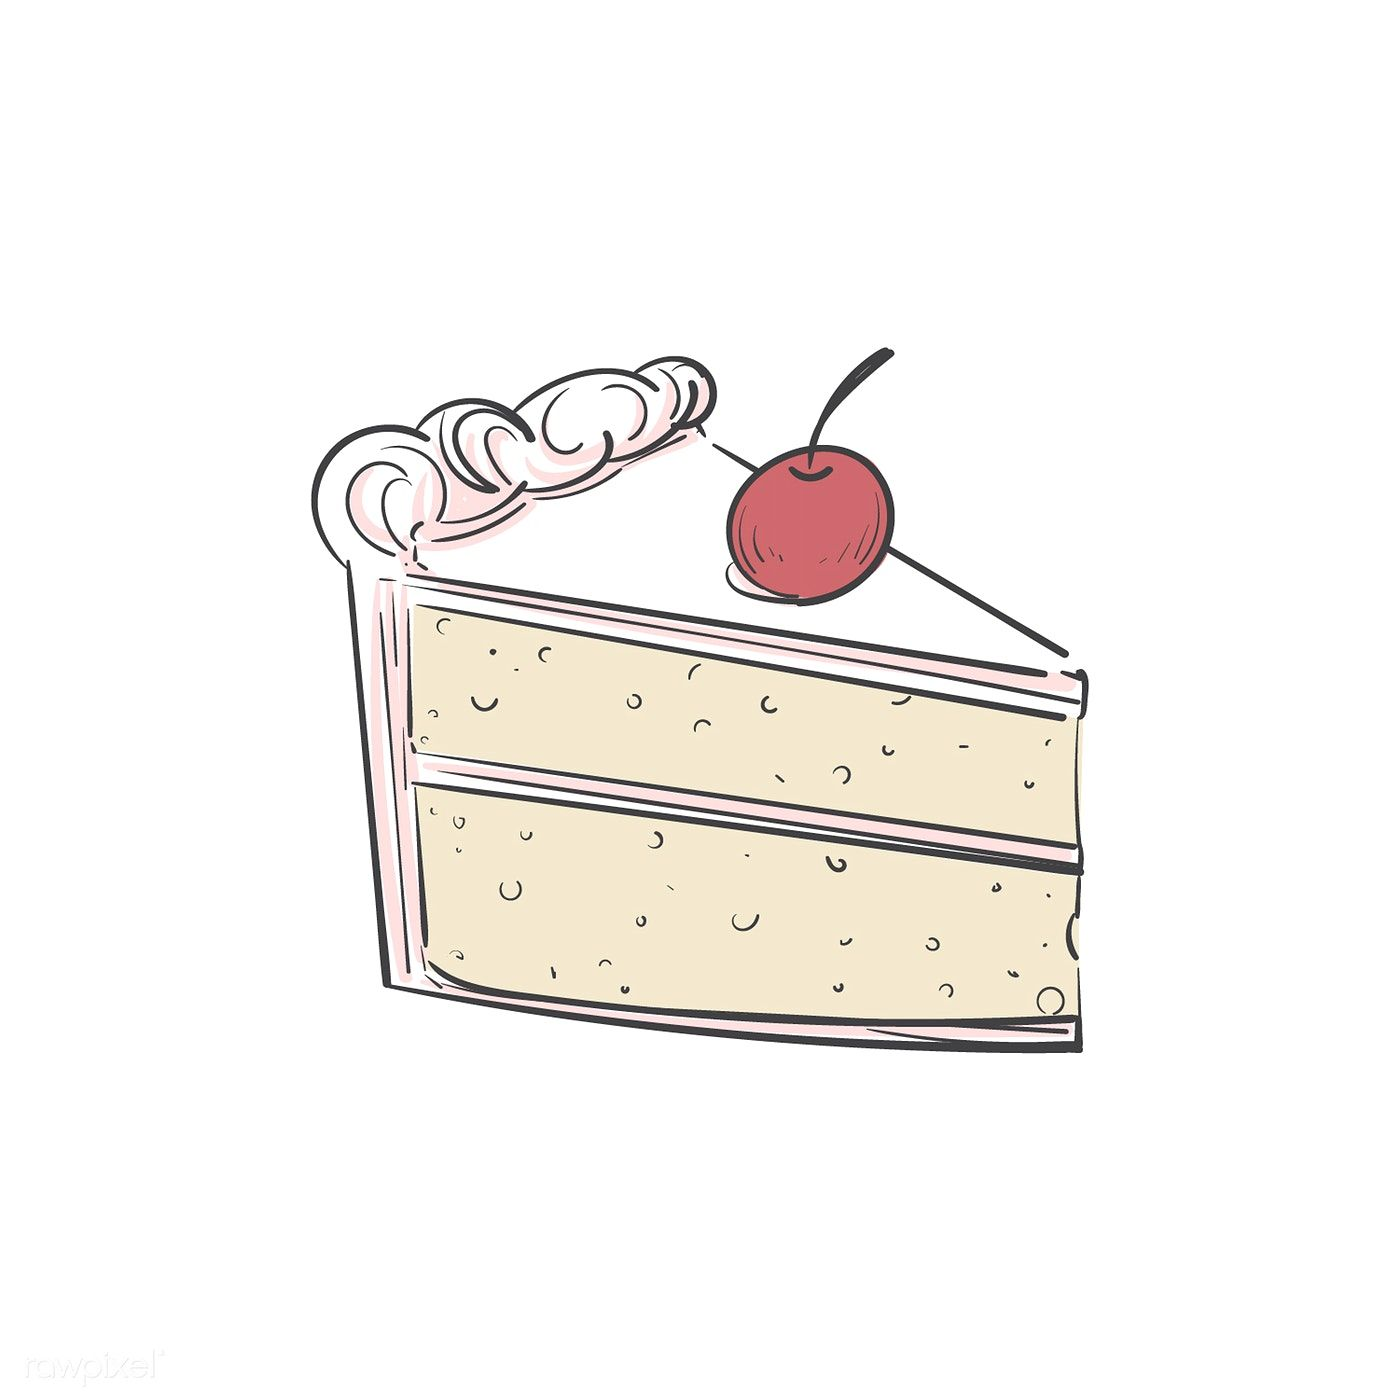 Download Premium Vector Of A Piece Of Cake 402803 Cake Illustration Cake Drawing Cake Sketch